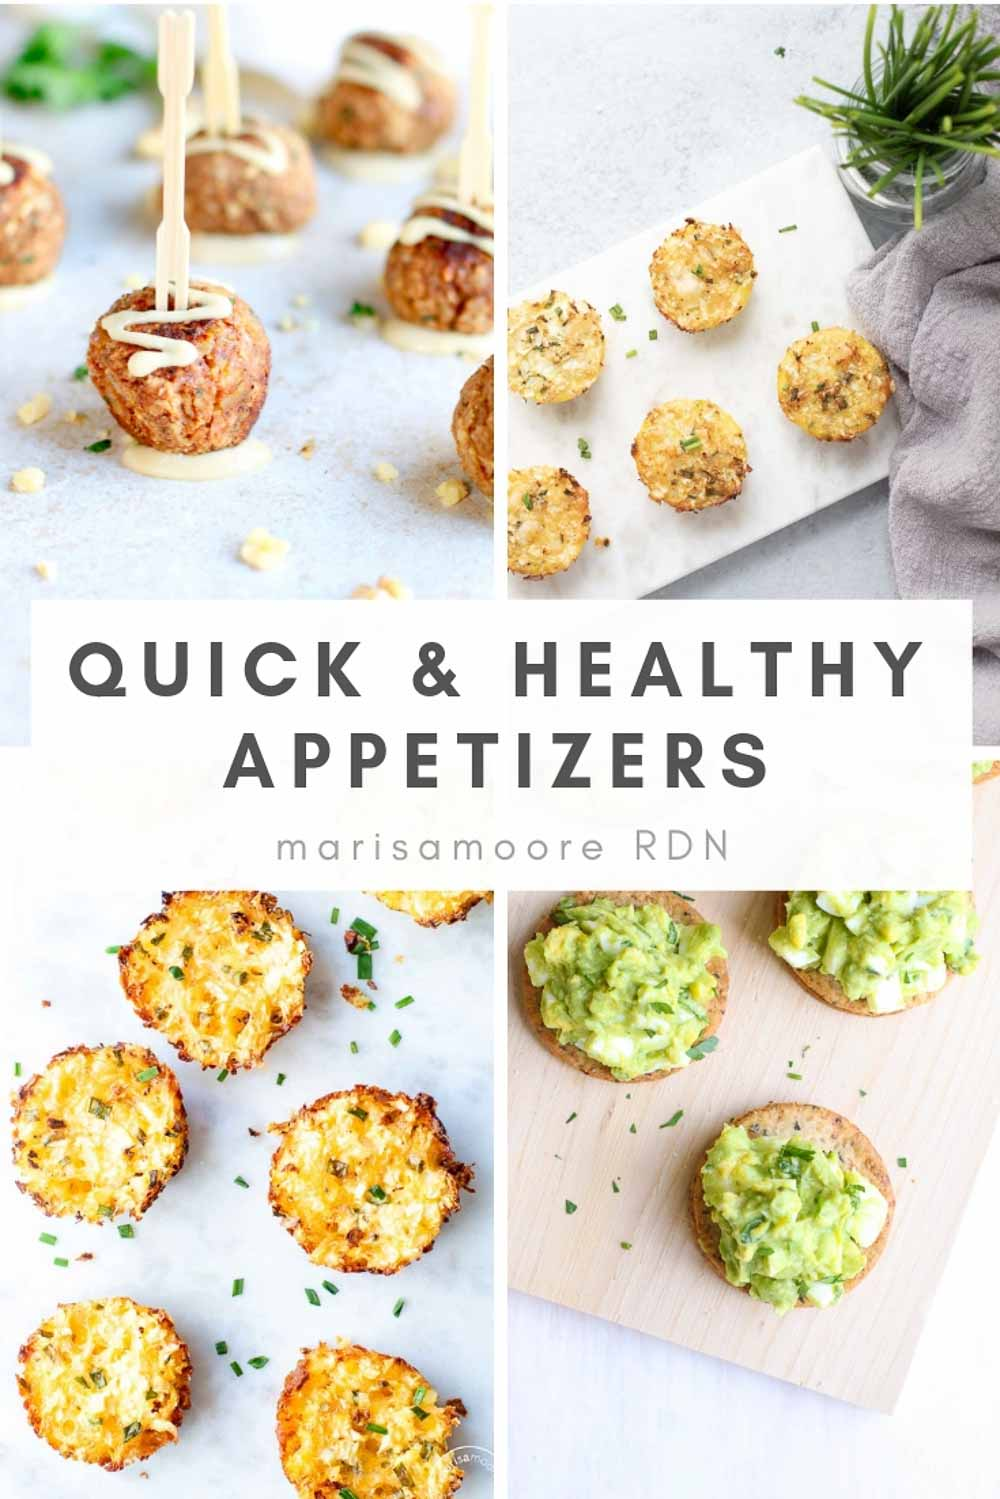 Quick & Healthy Appetizer Recipes Collage